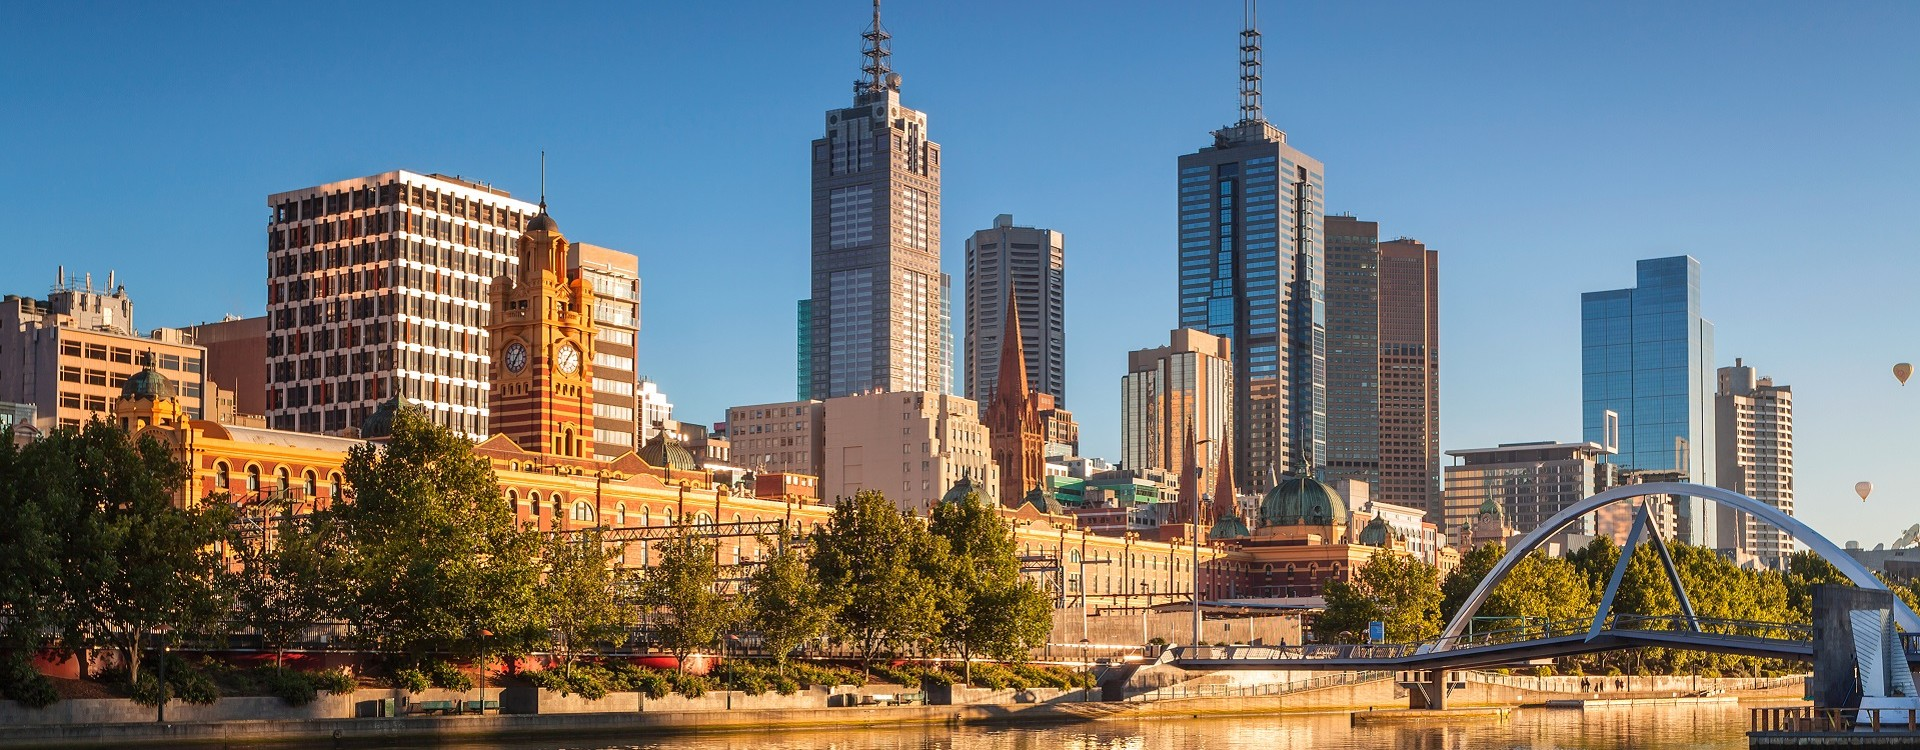 Take a stroll along Melbourne's Yarra riverside